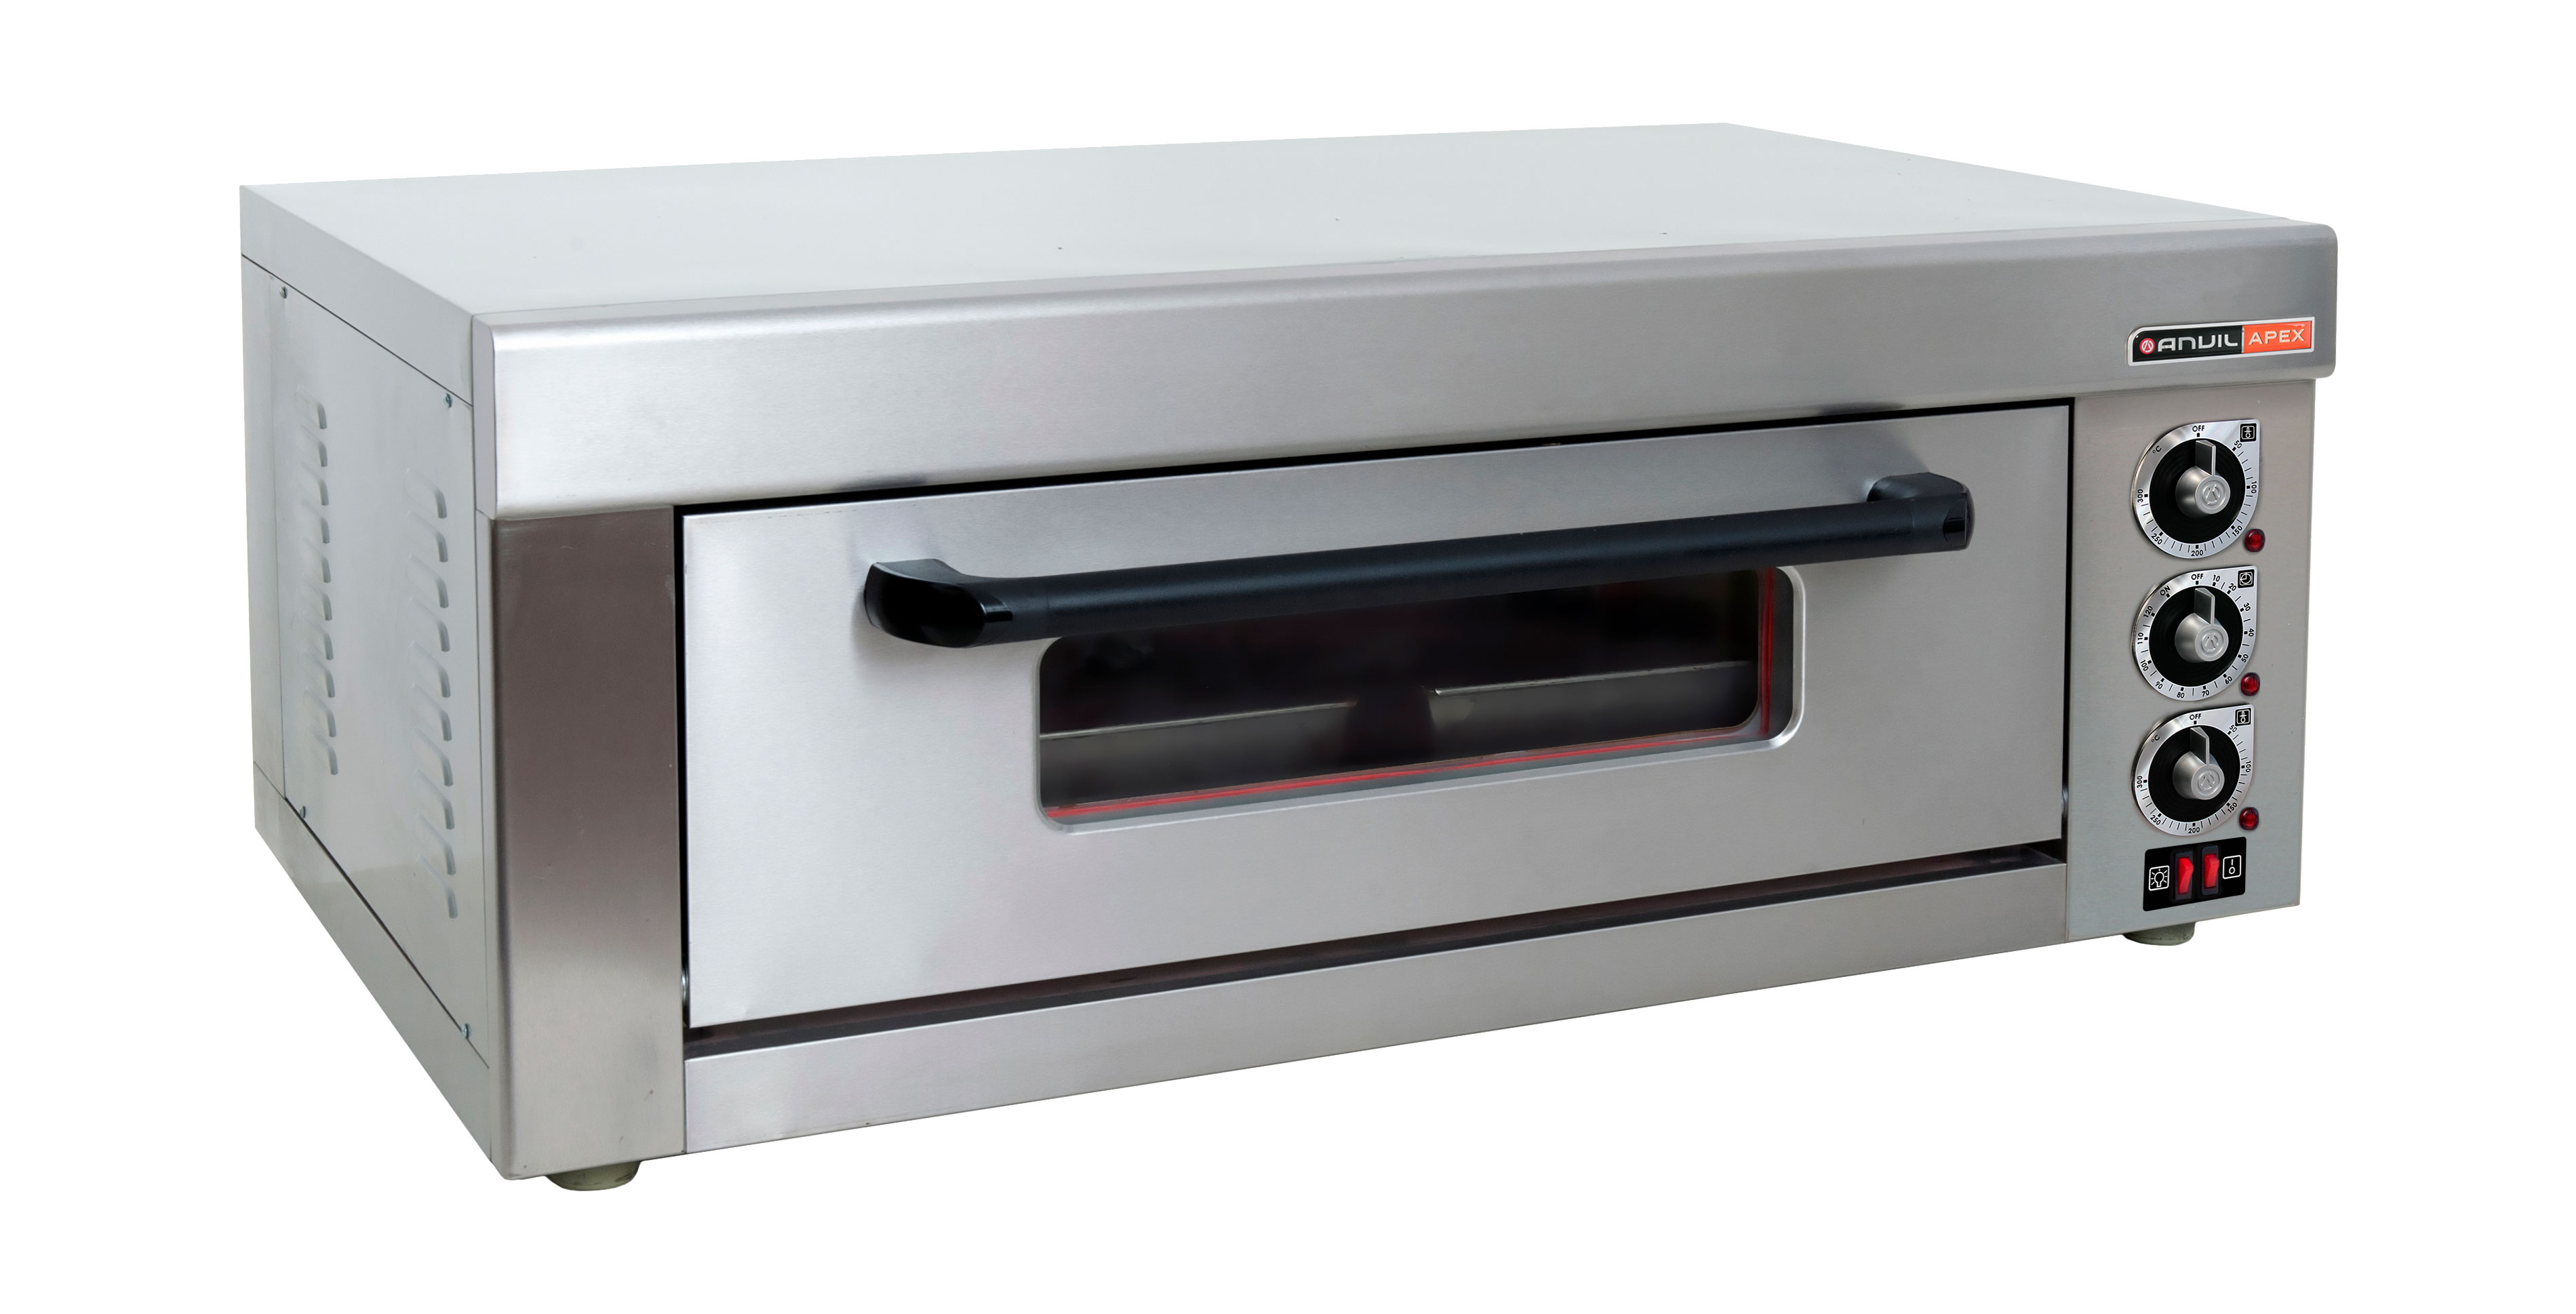 DECK OVEN ANVIL - 2 TRAY - SINGLE DECK